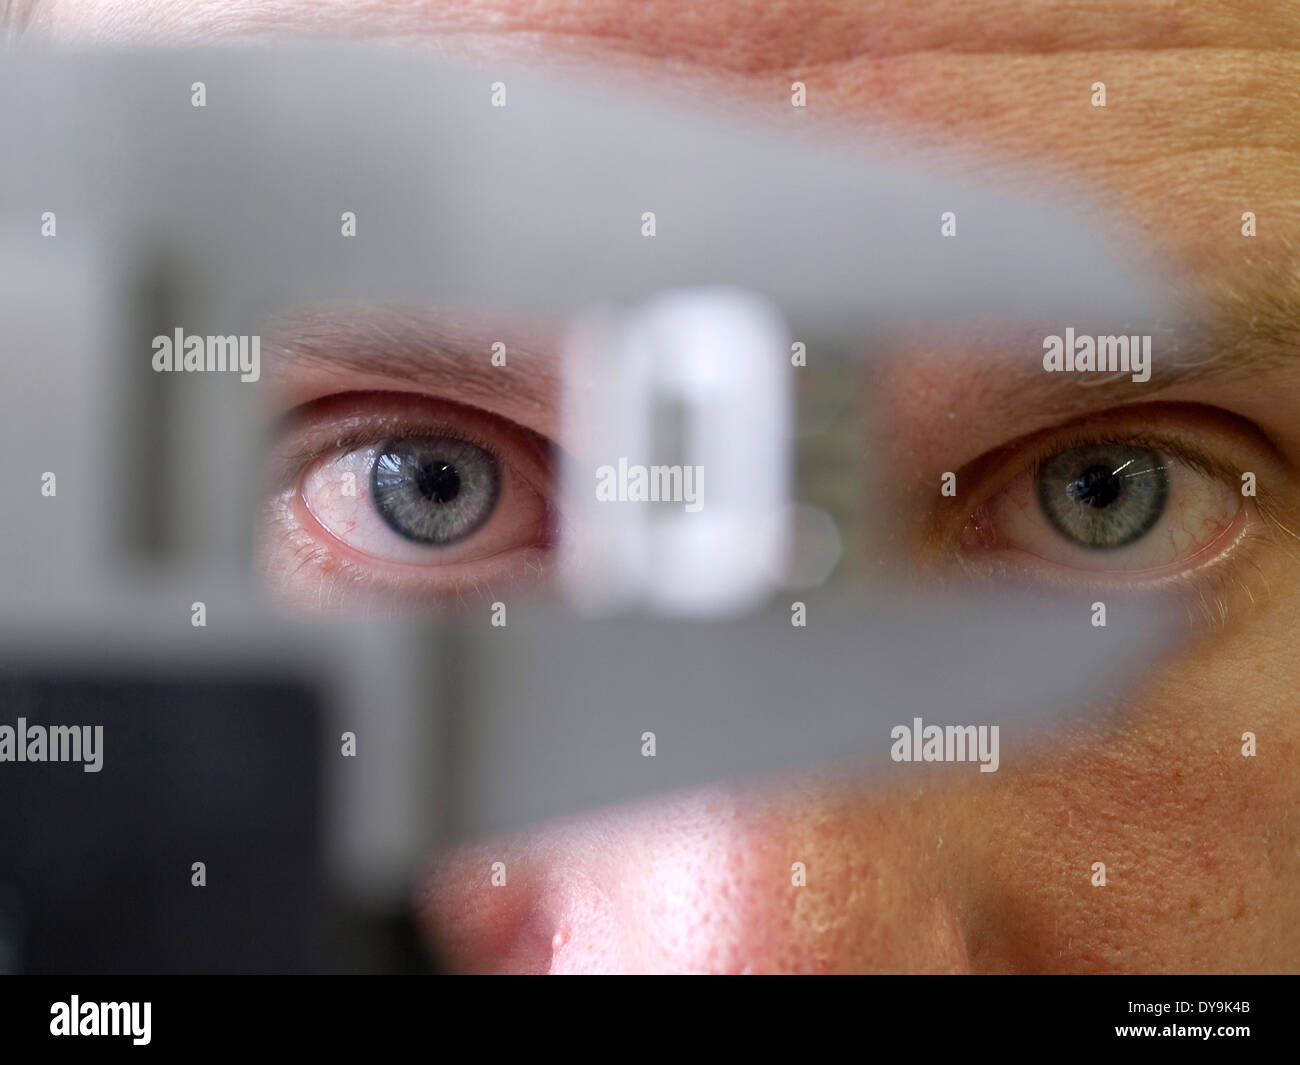 Eyes looking to caliper - Stock Image